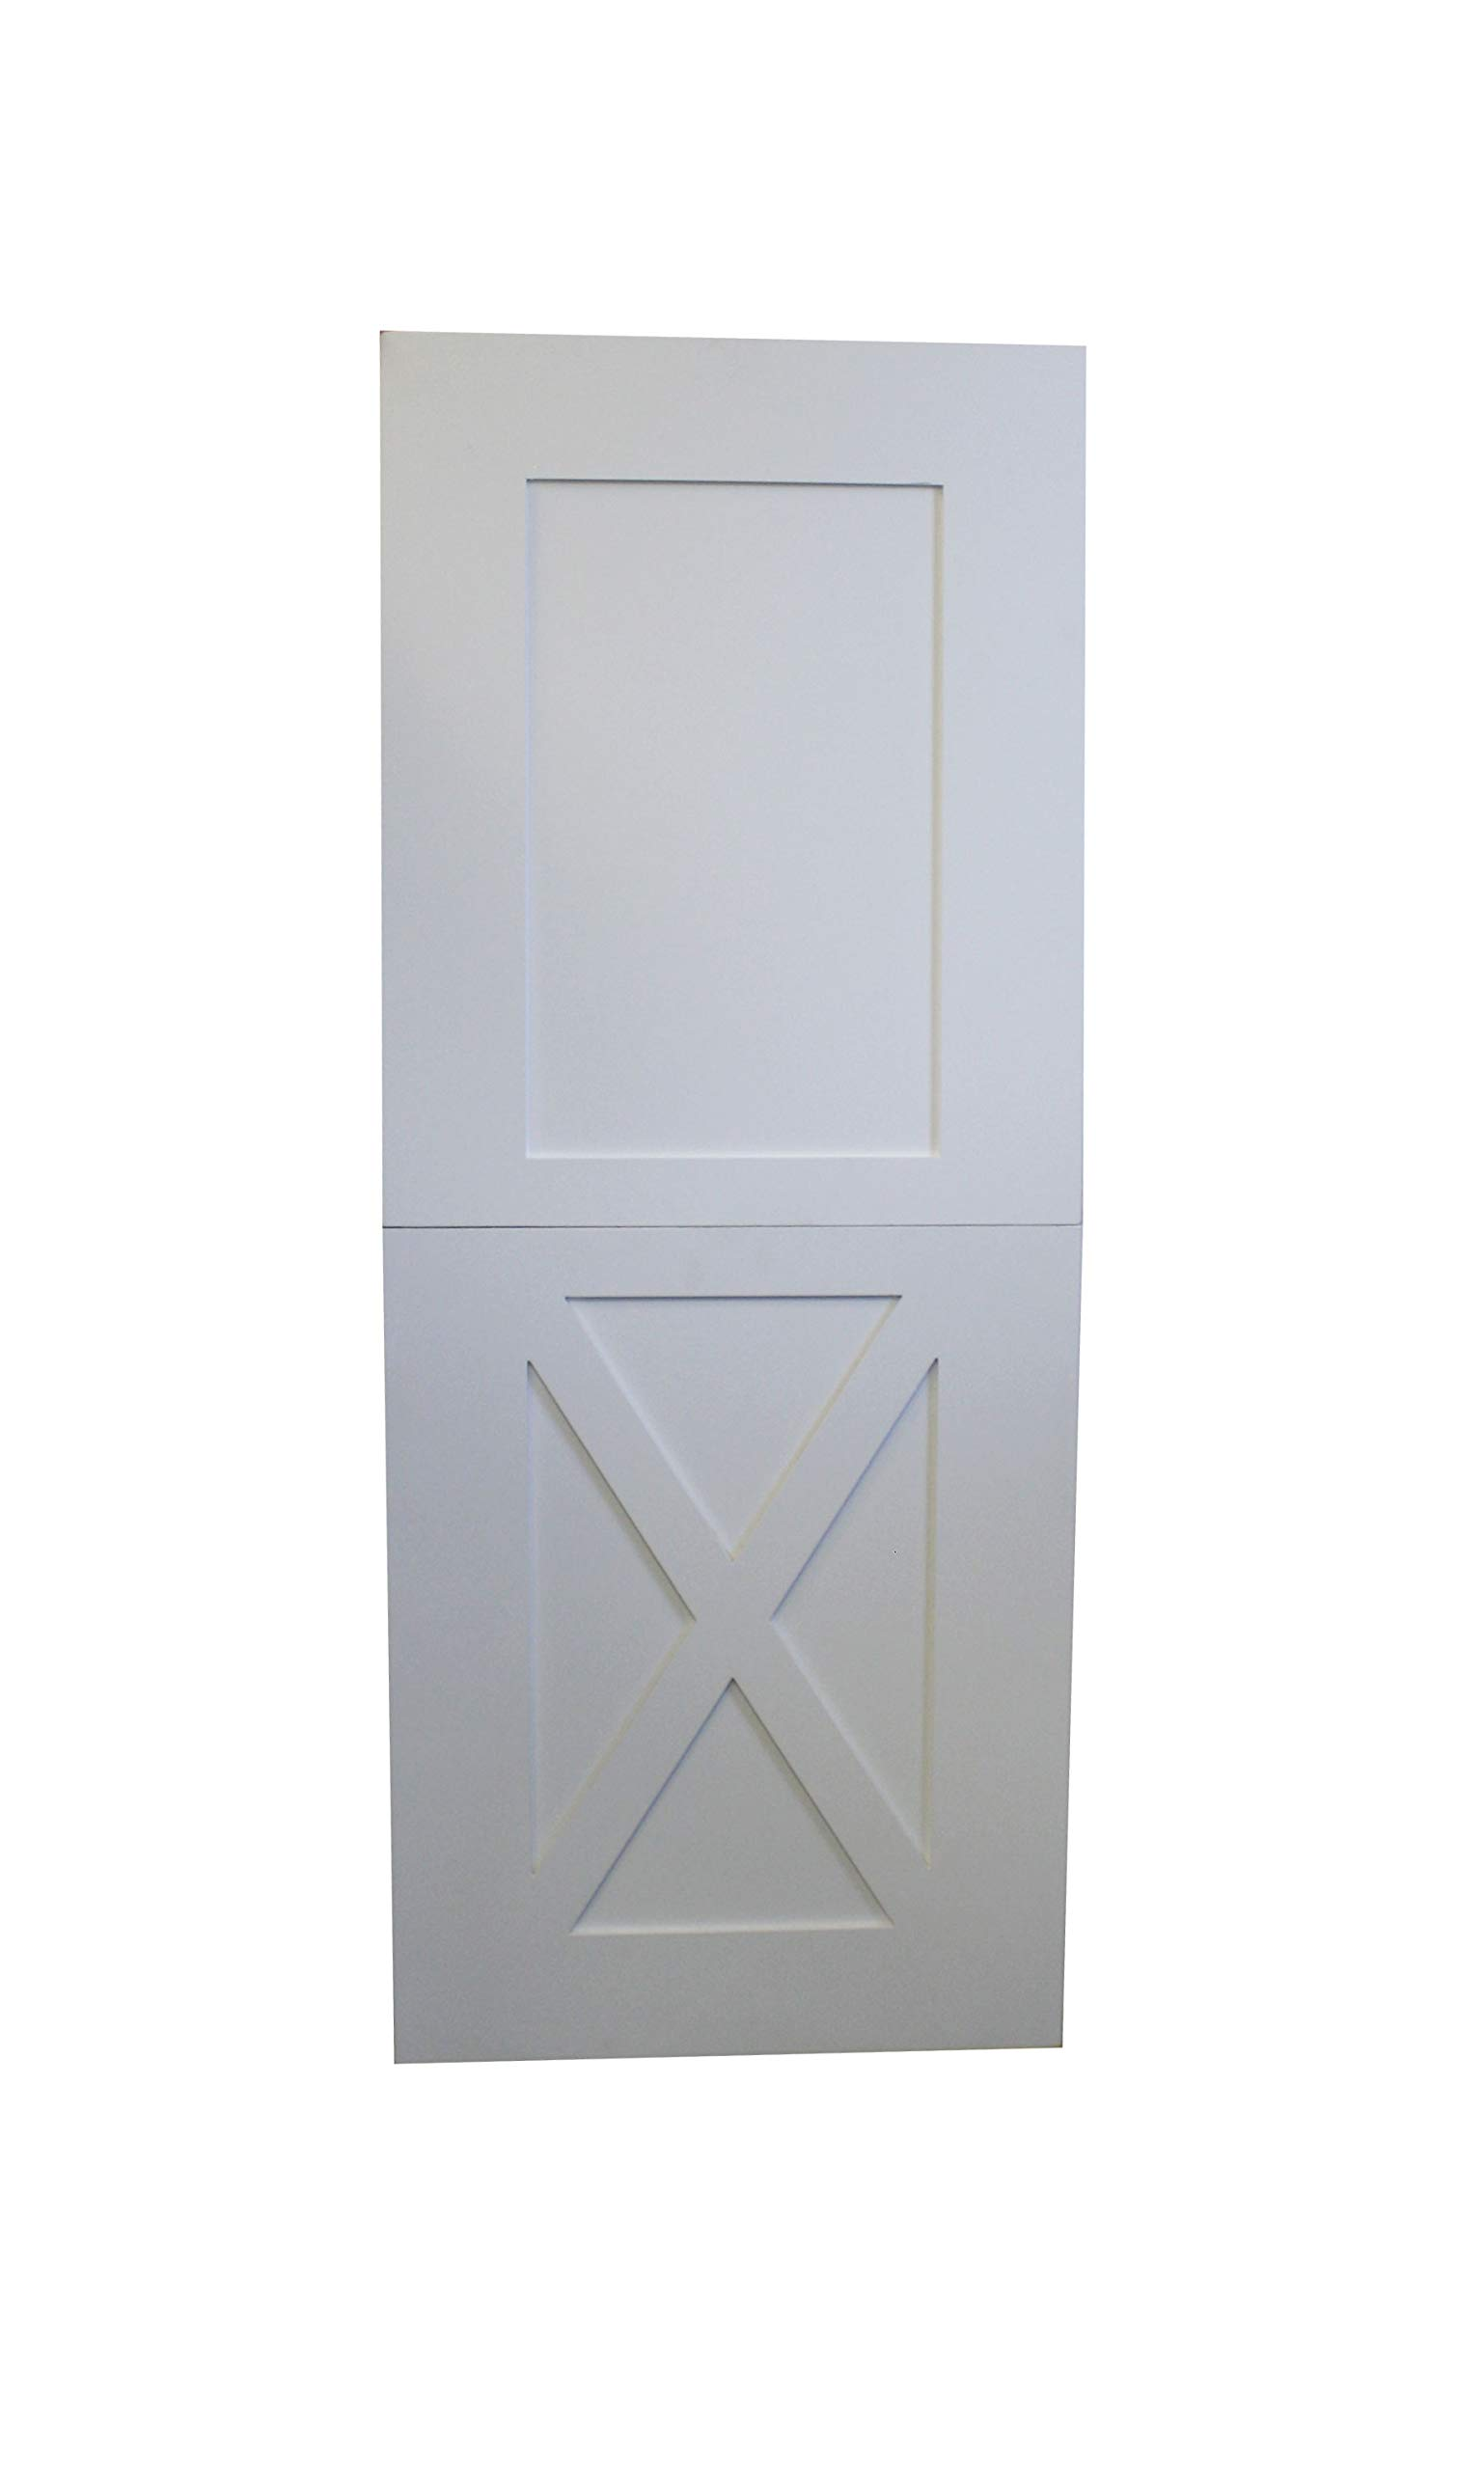 Shed Windows and More Playhouse Dutch Door Treehouse Door Barn Style 24'' x 48'' Fiberglass by Shed Windows and More